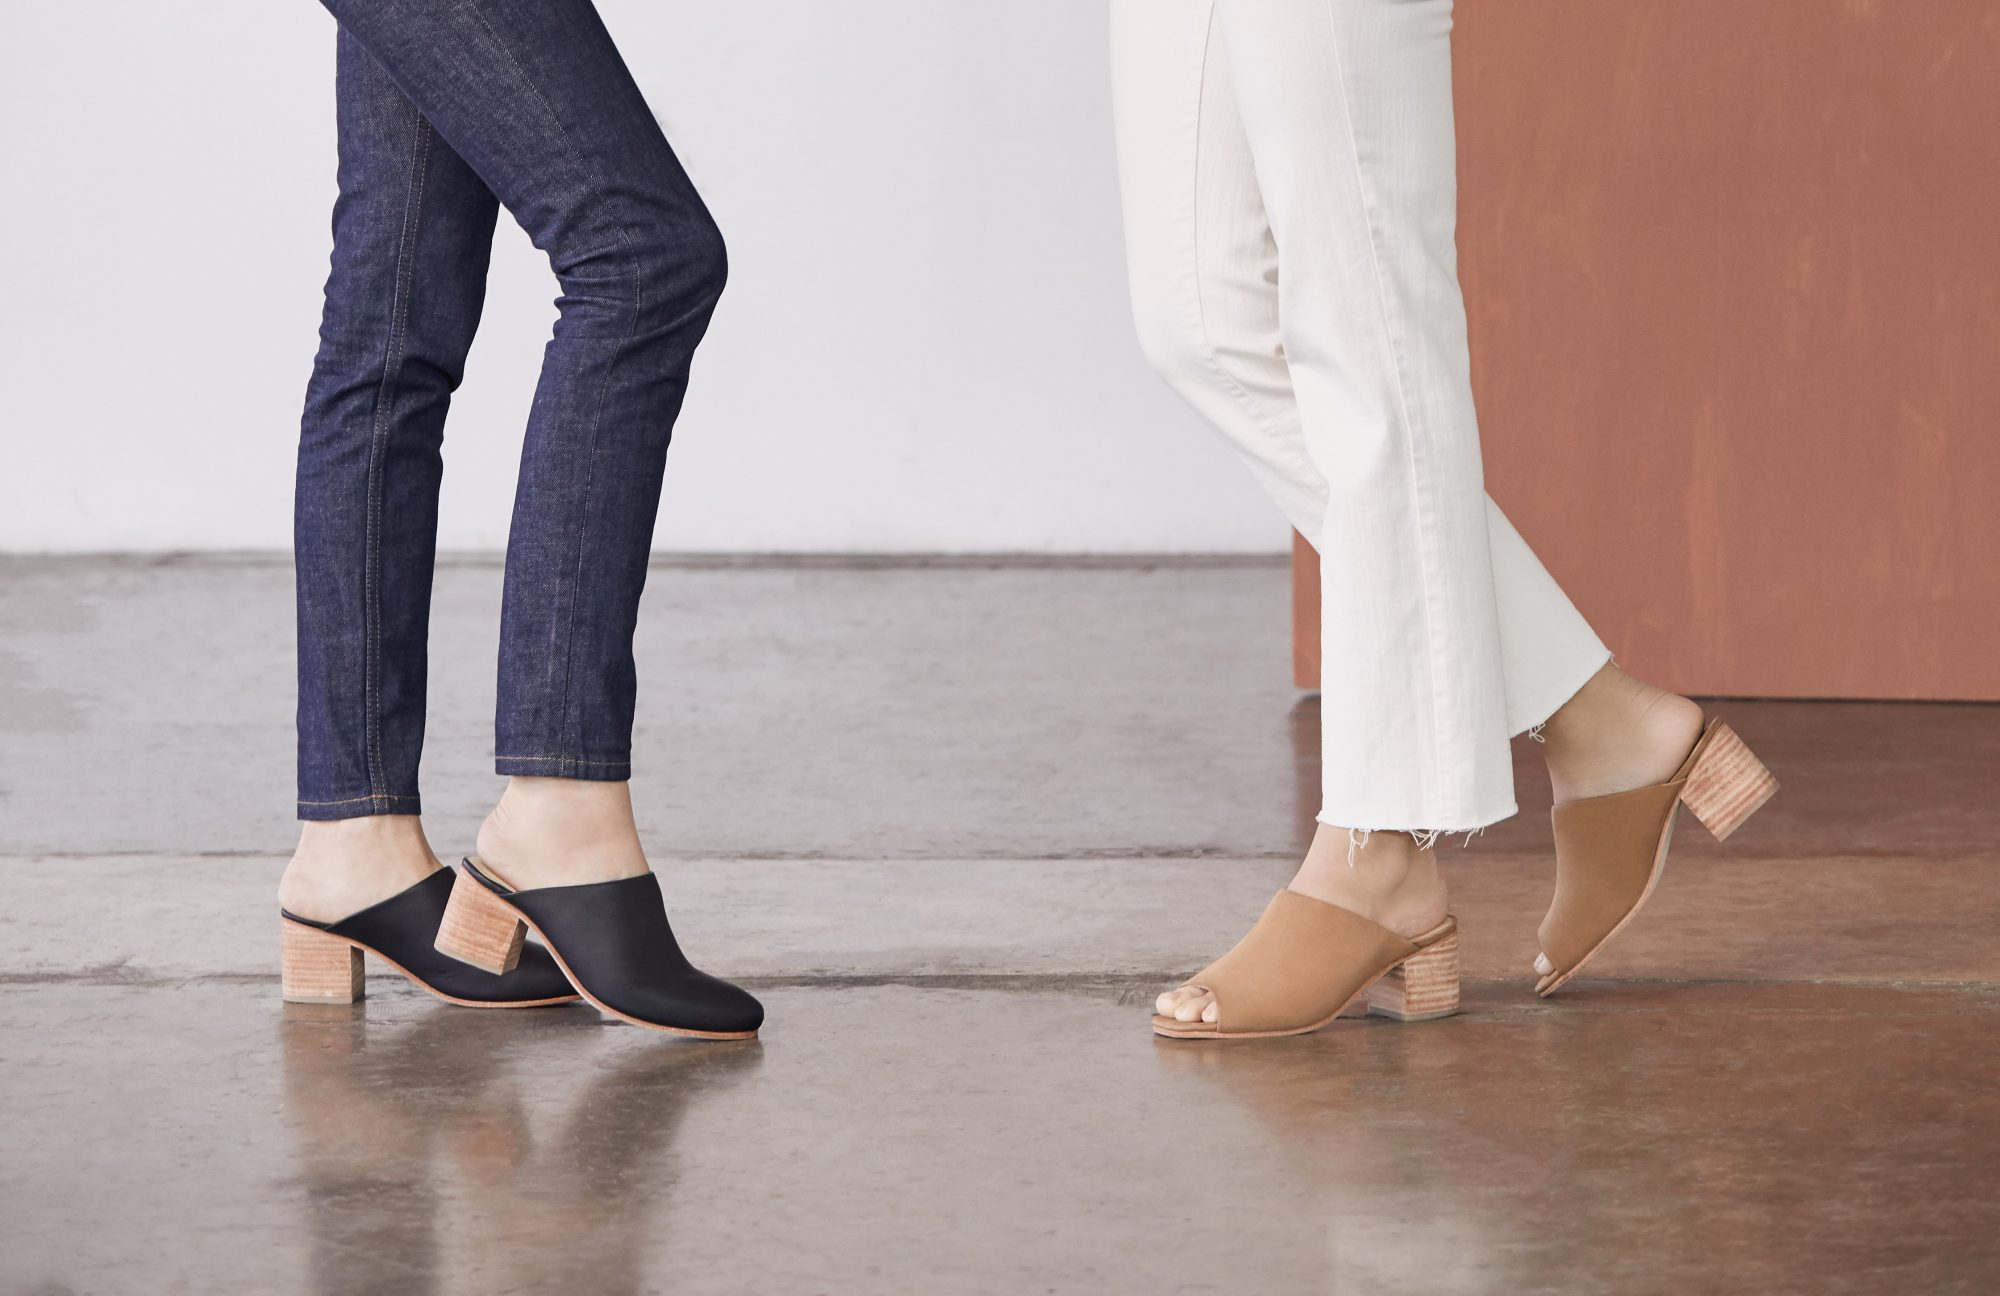 Two sets of legs from waist down wearing nisolo mules